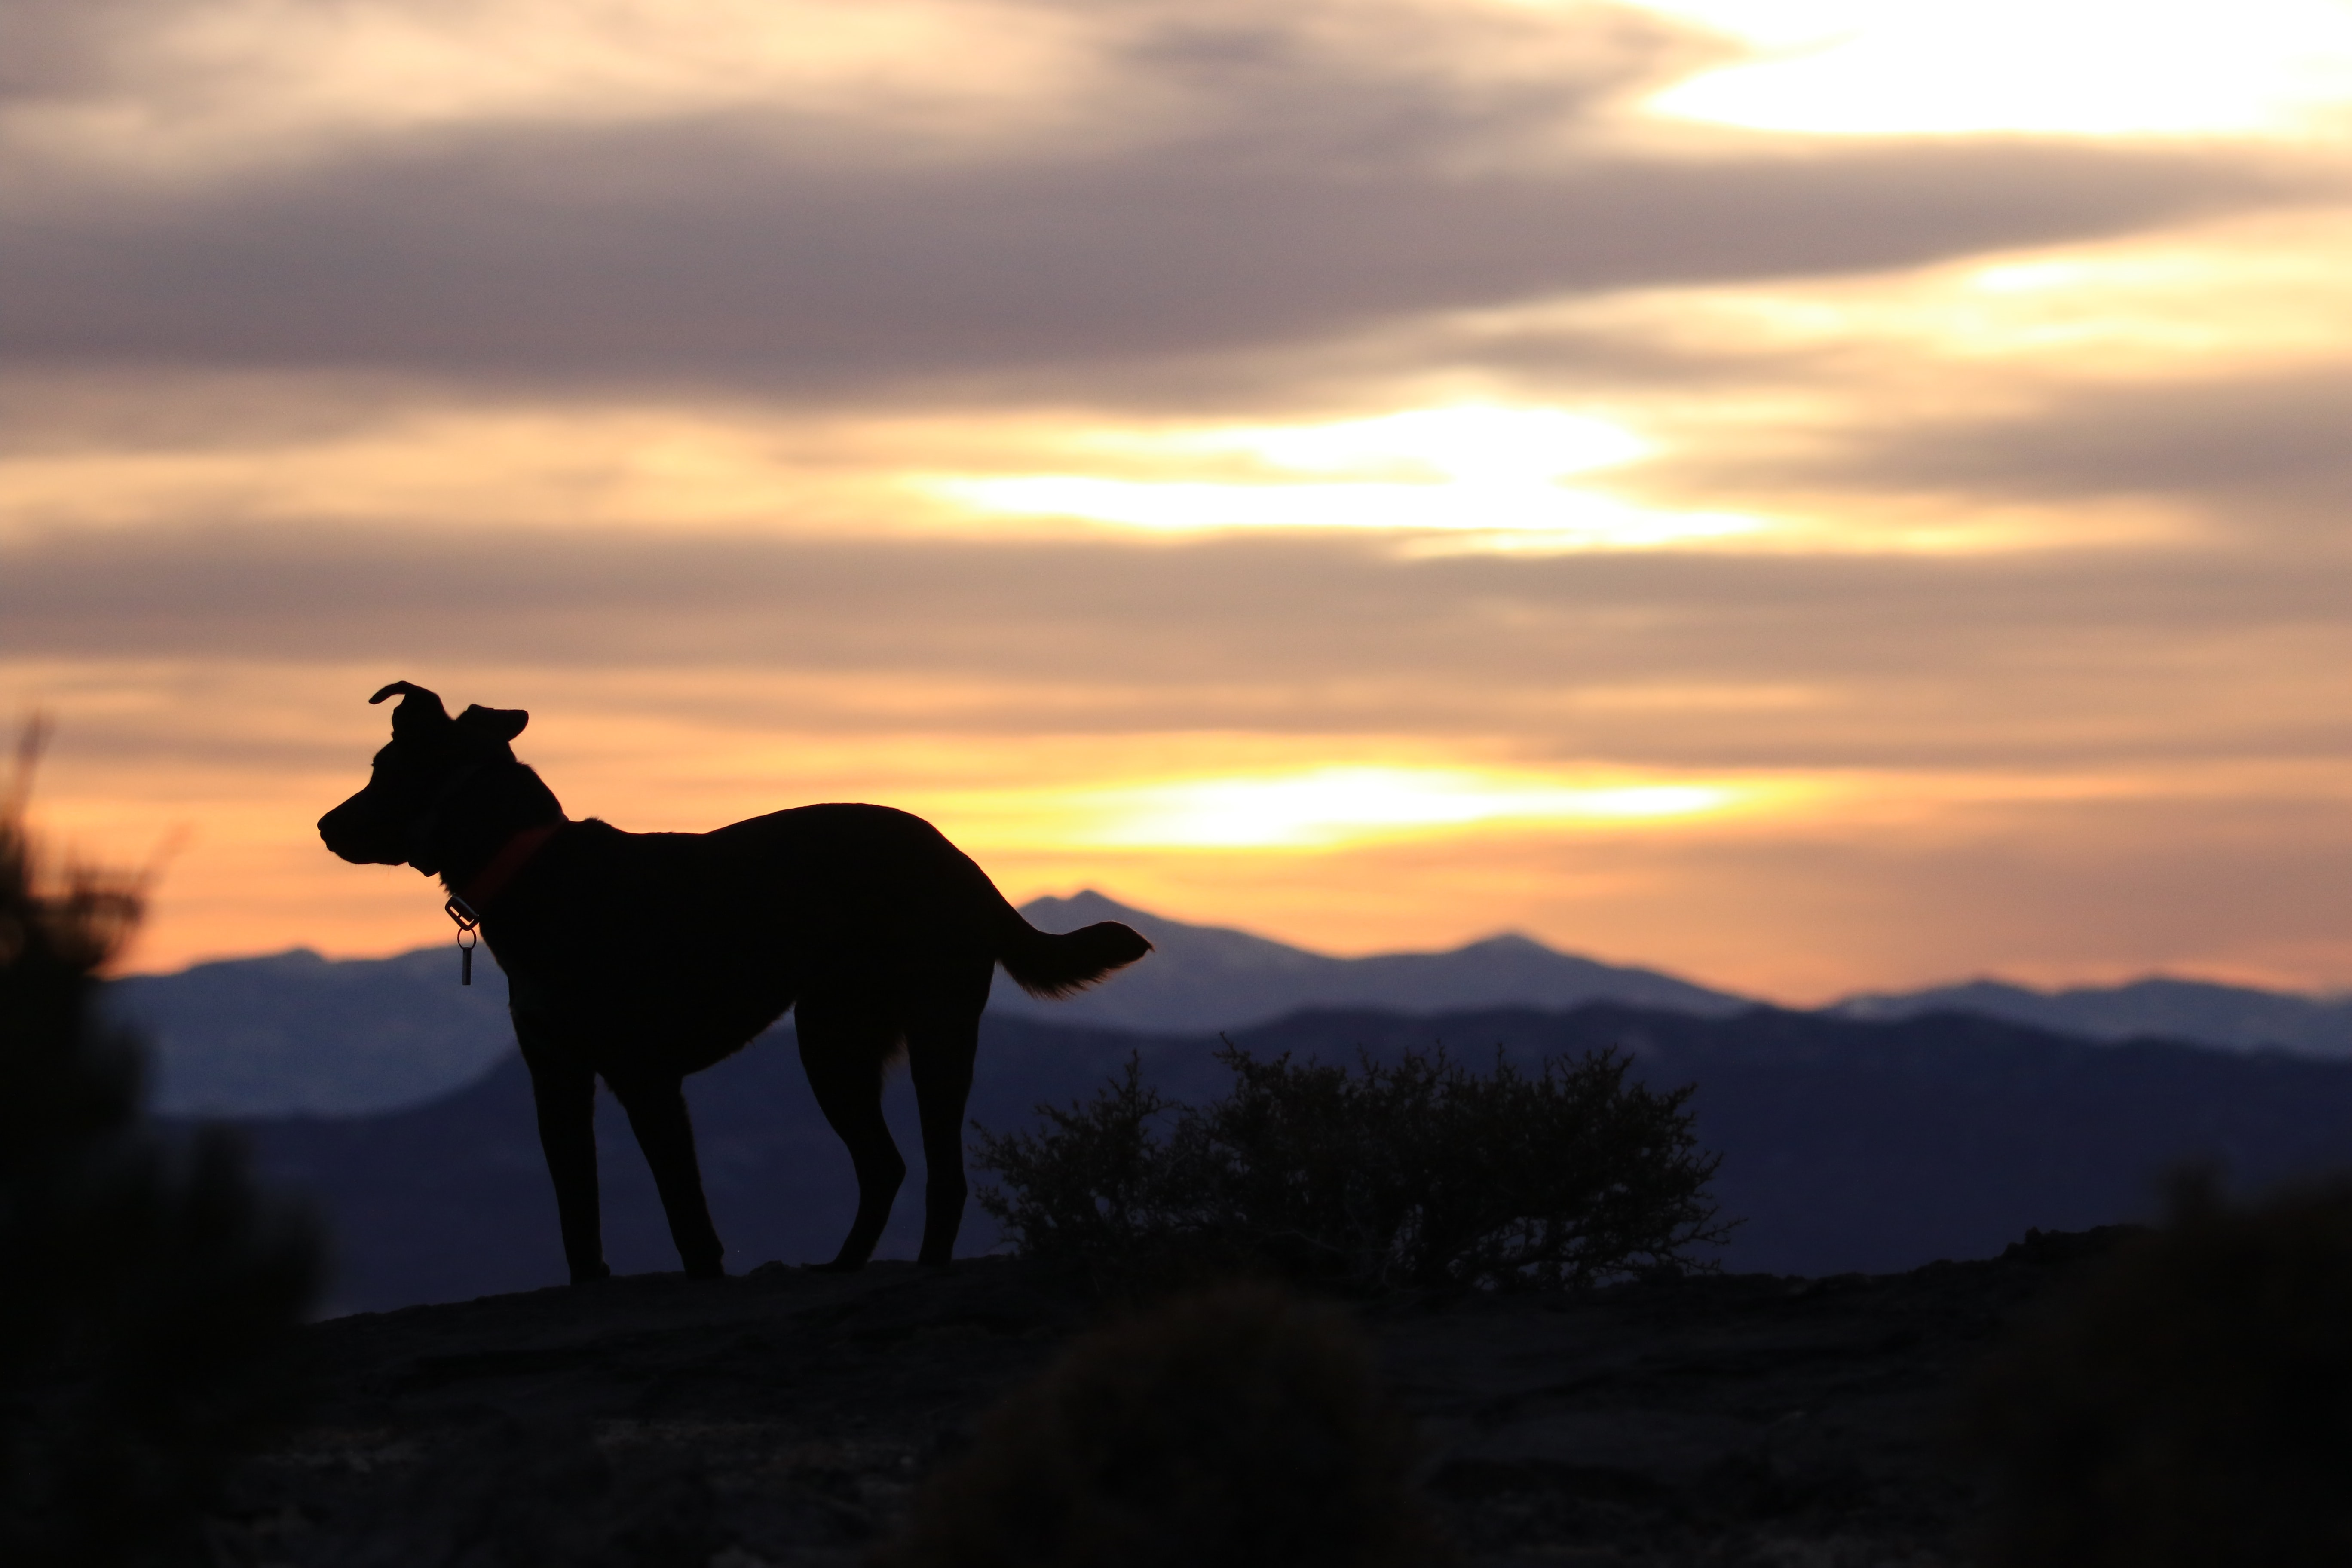 silhouette photo of dog on hilltop during sunset